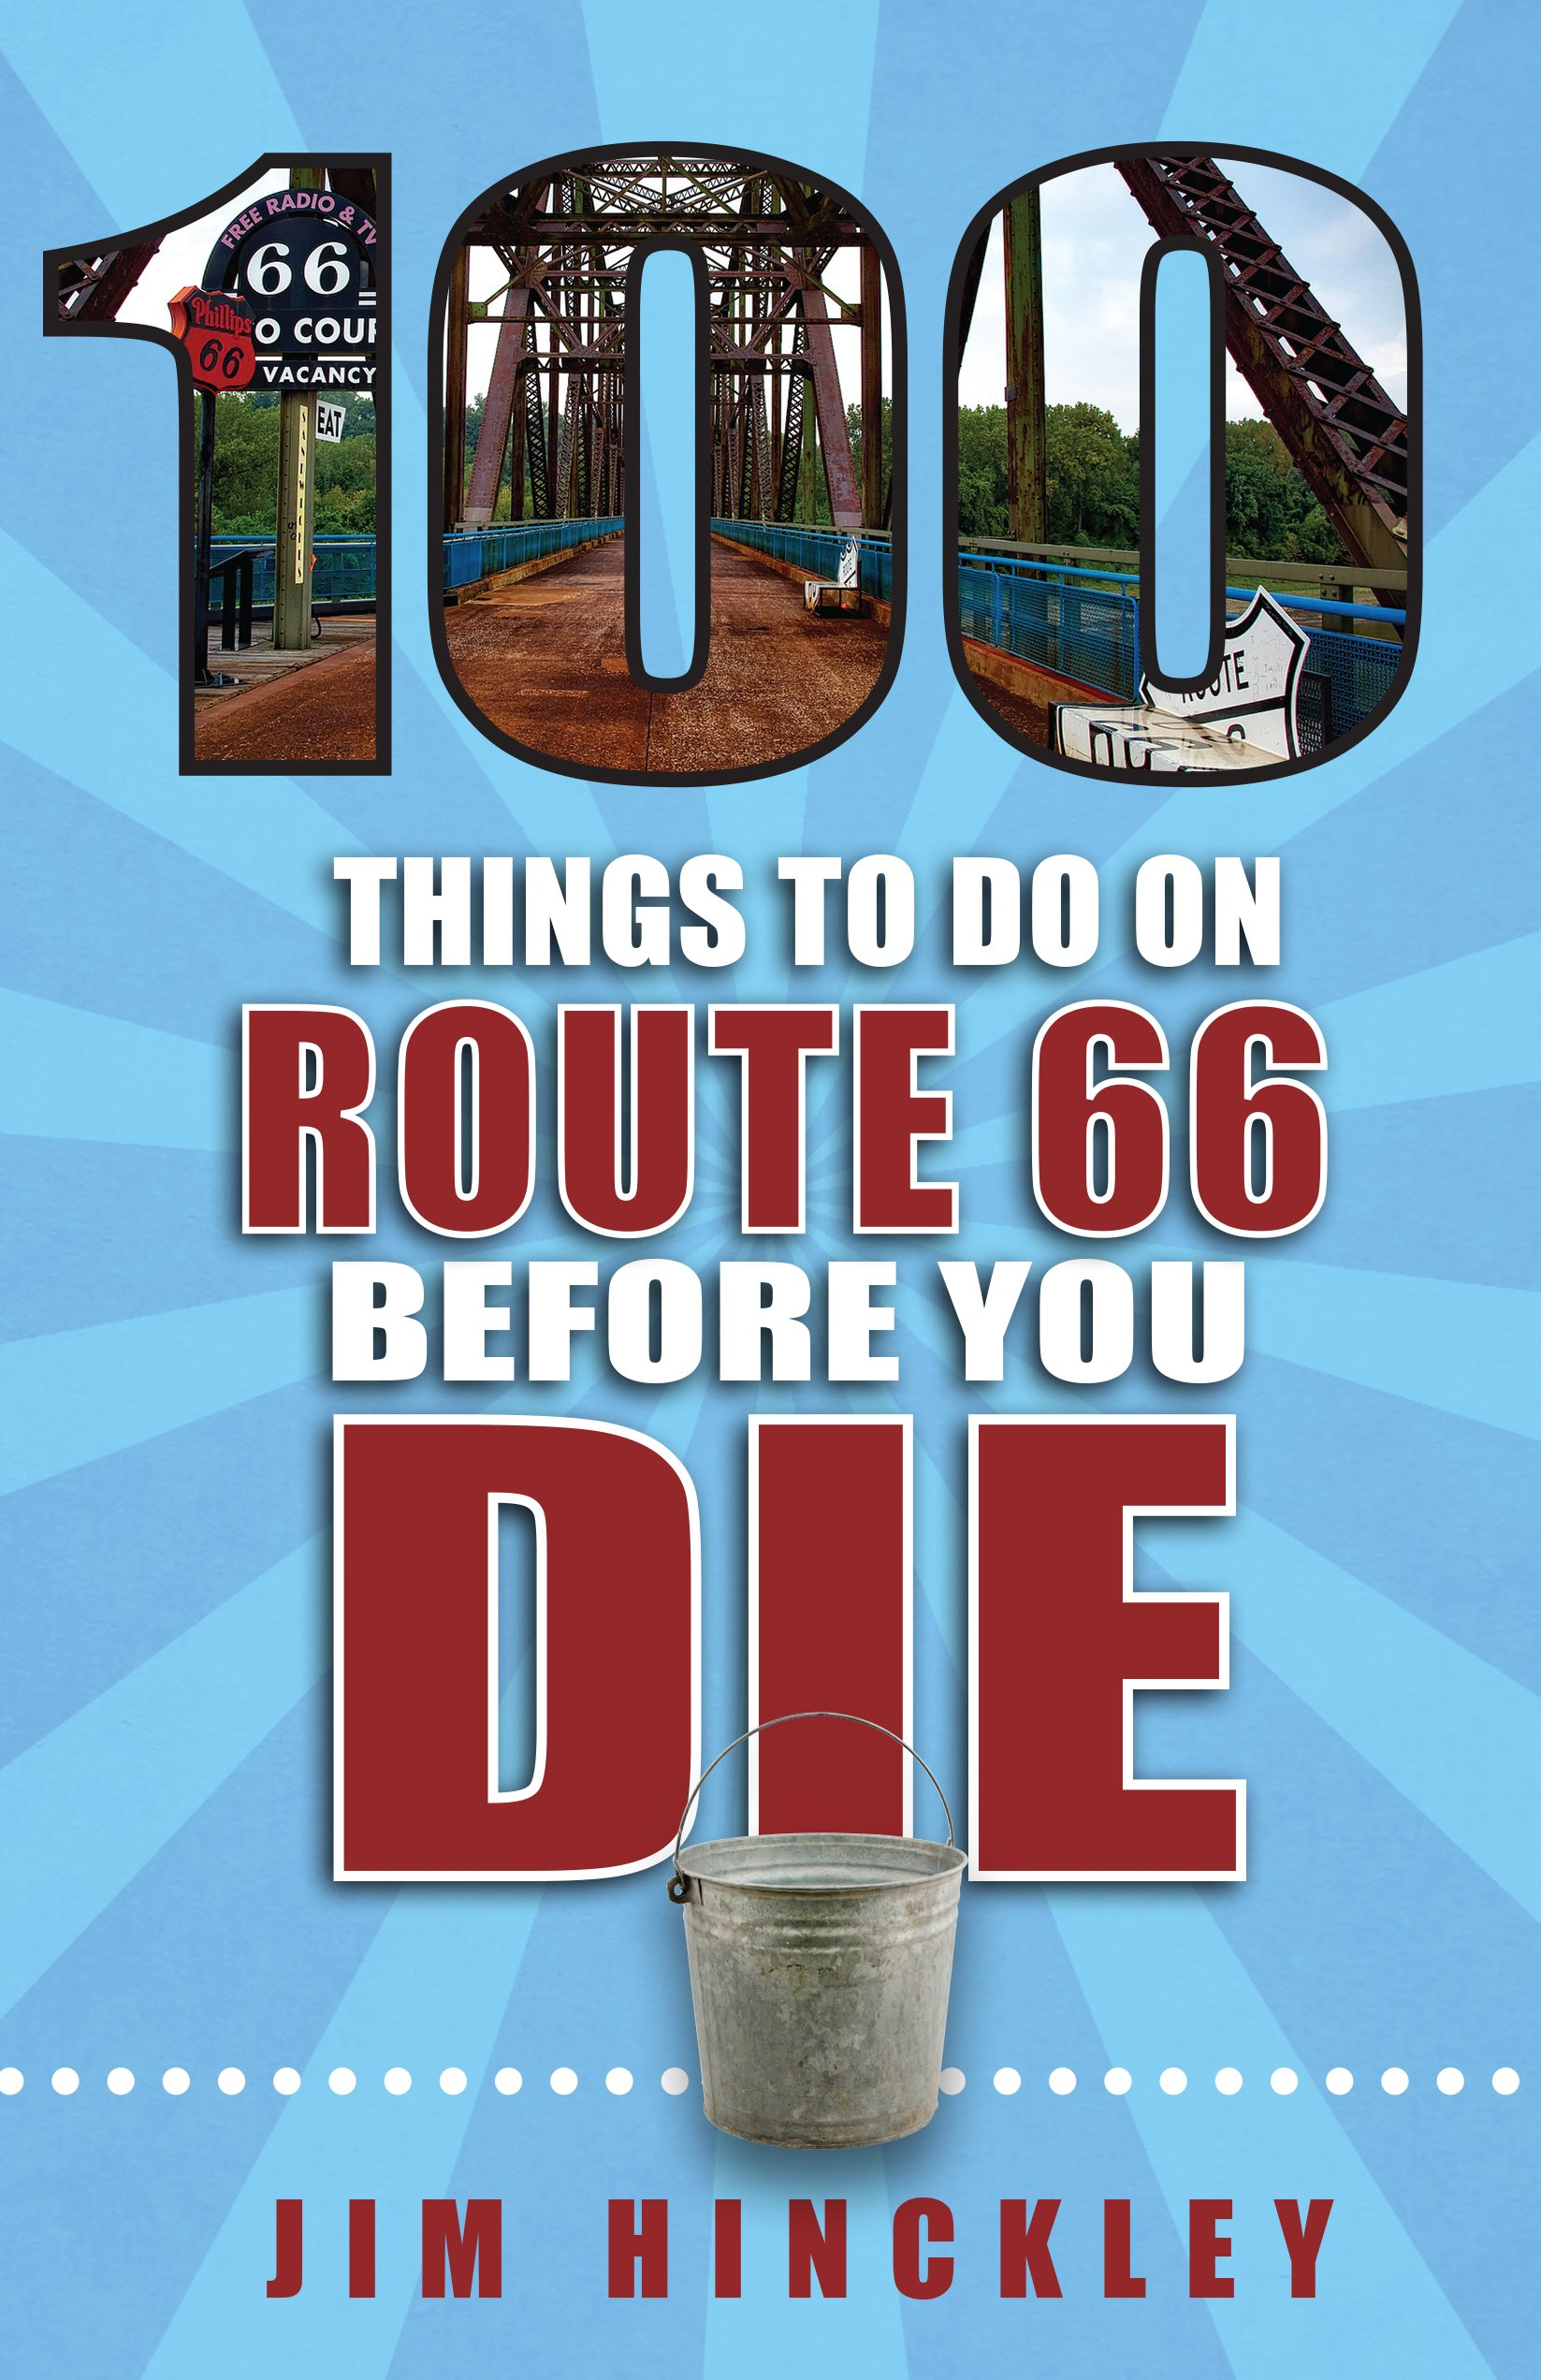 100 things to do on route 66 before you die | autobooks-aerobooks